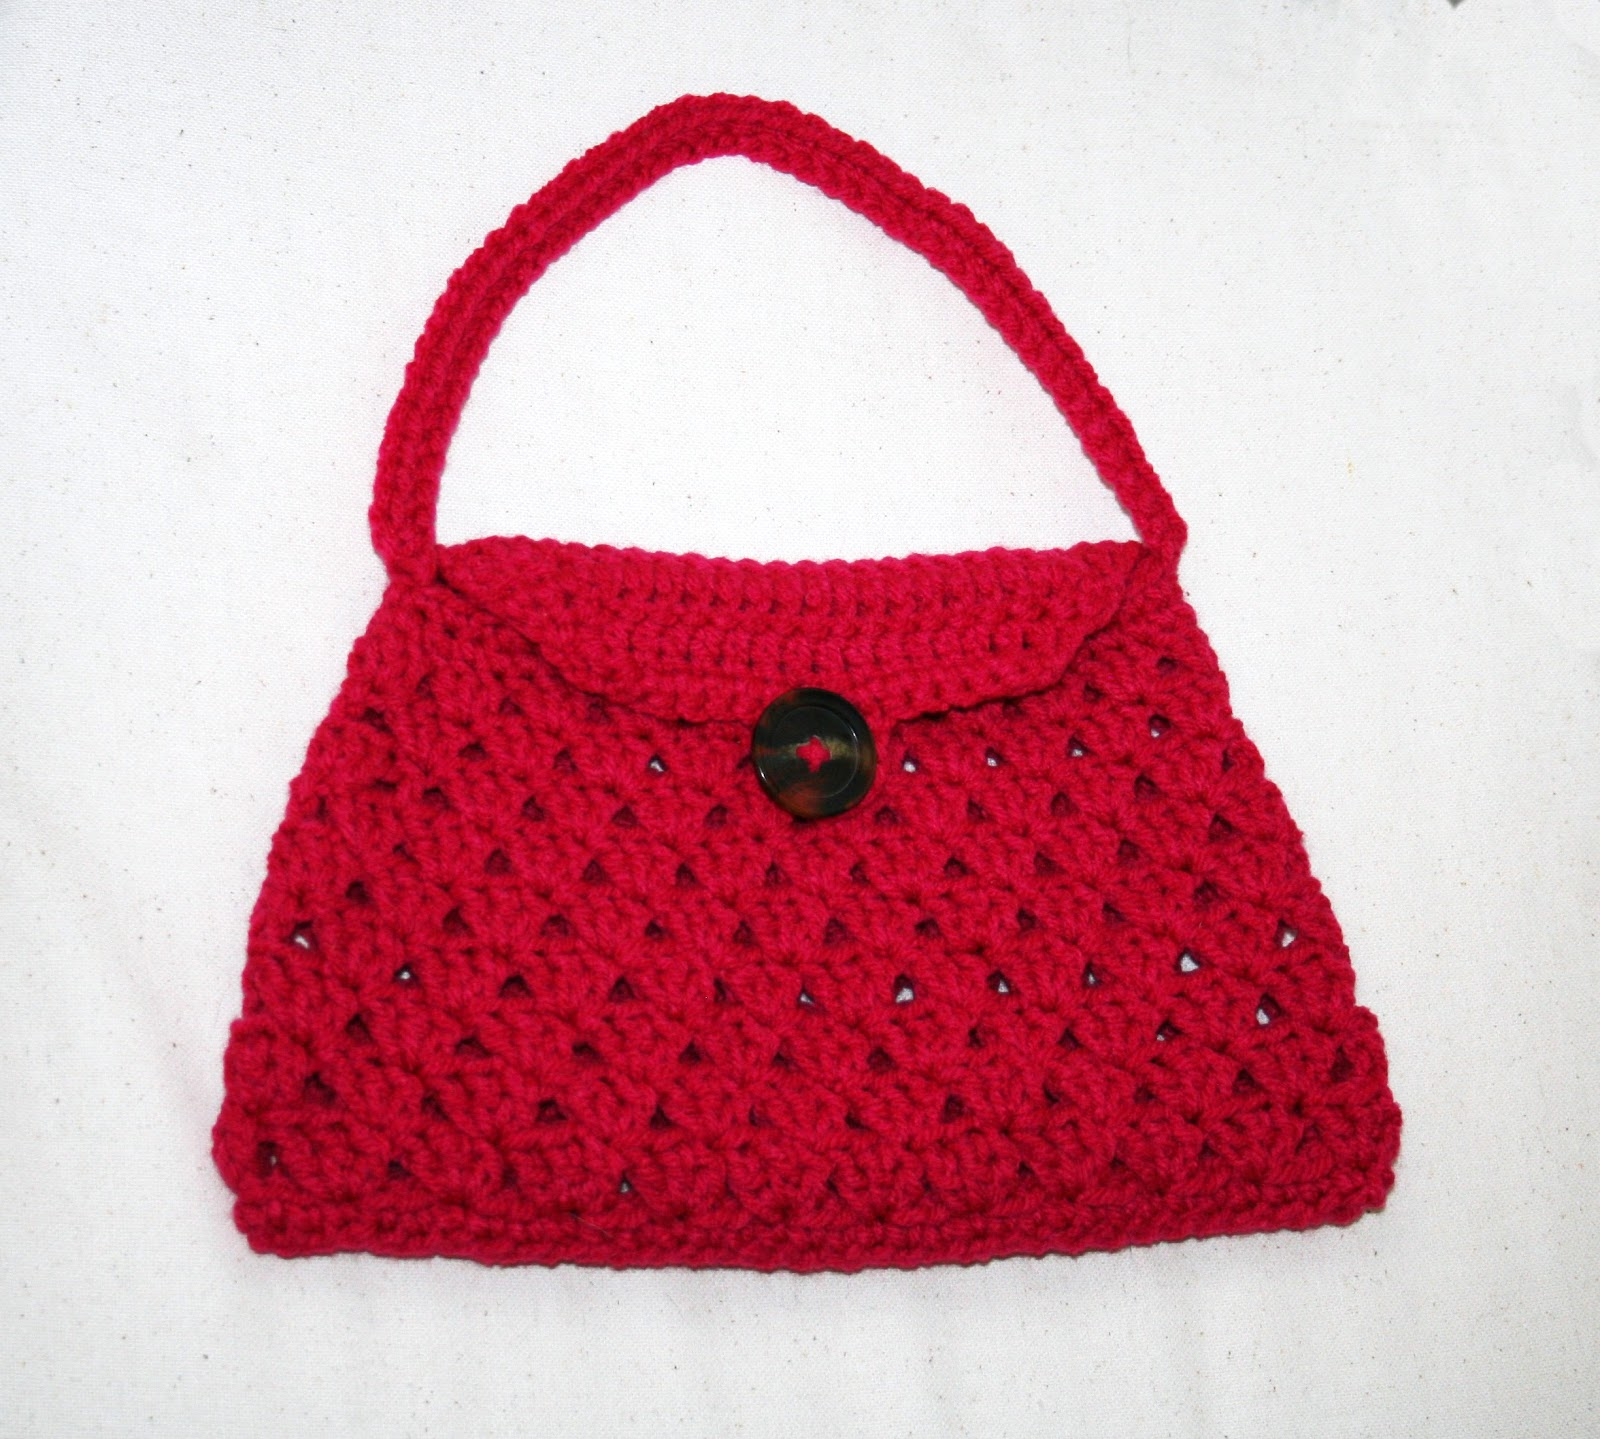 Crocheted Handbag : Tampa Bay Crochet: Free Crochet Pattern: Stylish Crochet Handbag